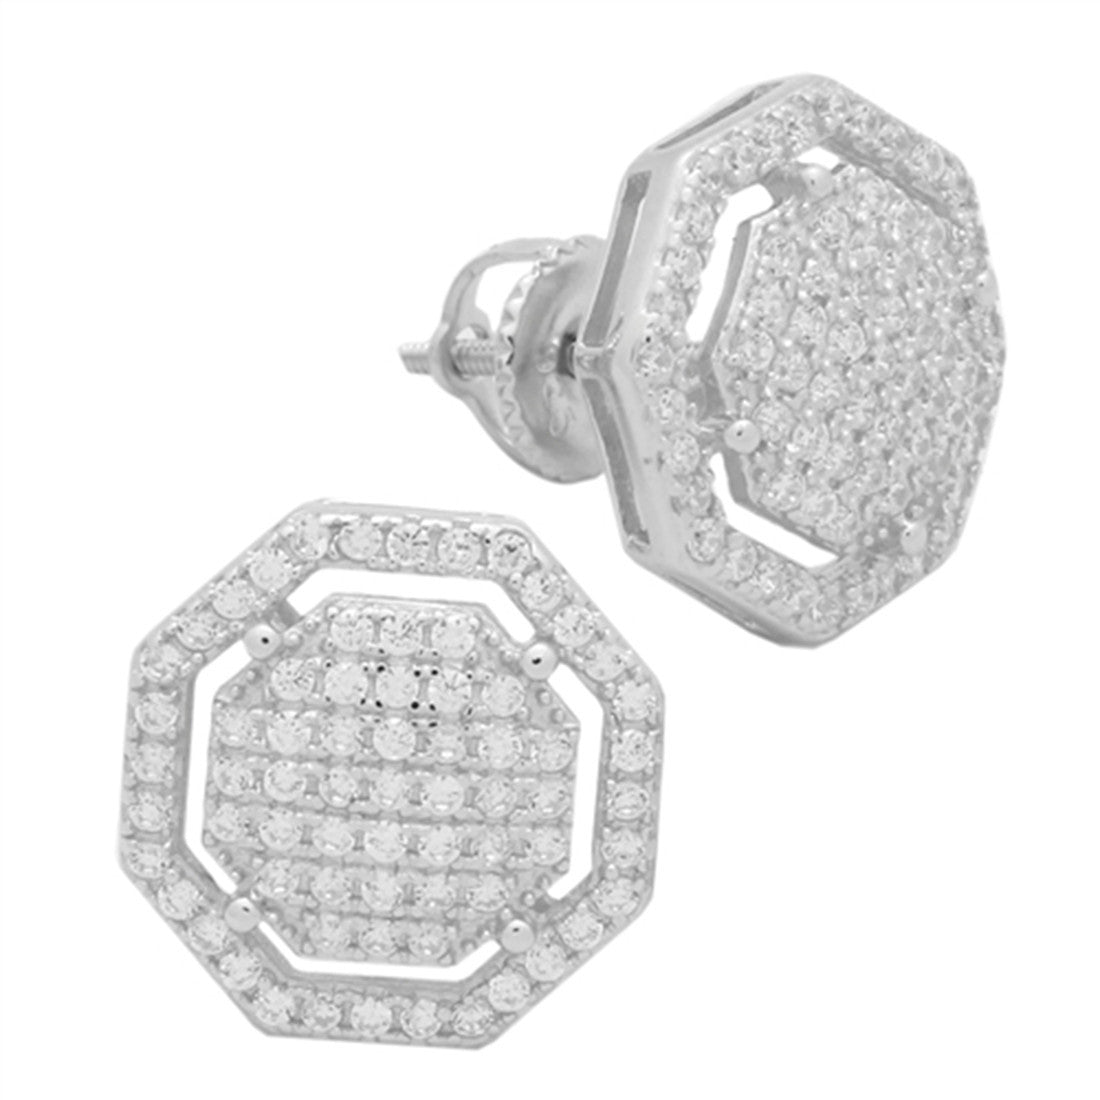 eb4a8be5e 12.5mm Octagon Hip Hop Stud Earrings Men Women Unisex Pave Ice Cubic  Zirconia Screw Back